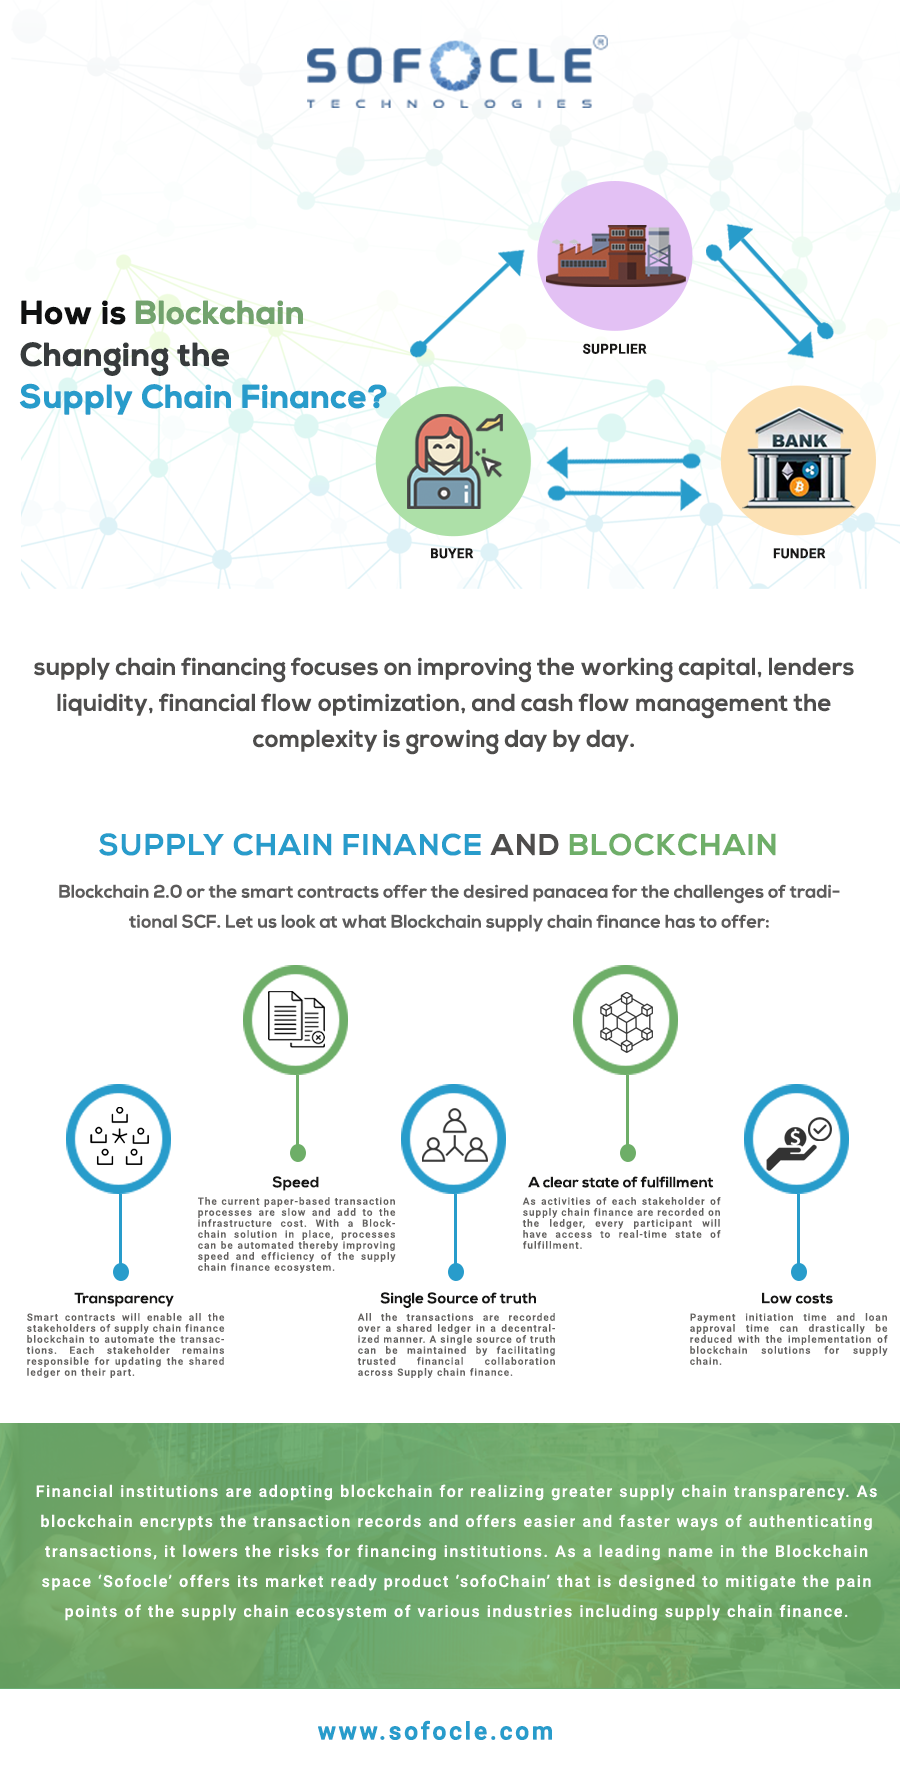 Blockchain for Supply Chain Finance helps in reducing the